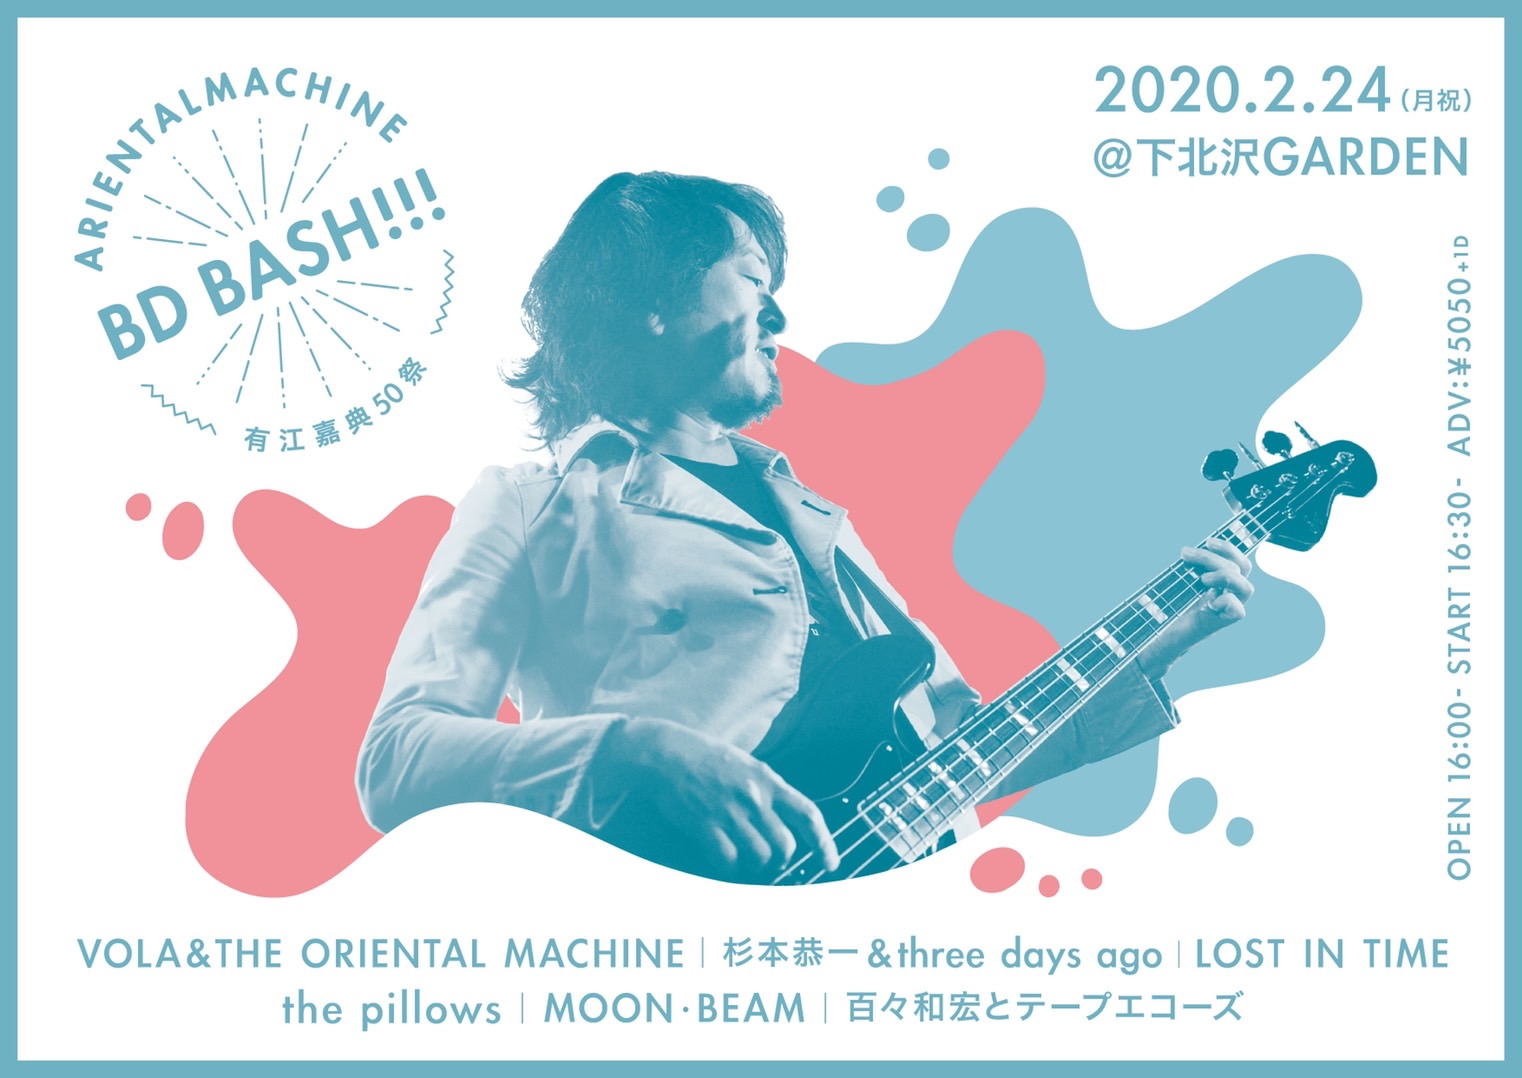 Arientalmachine BD Bash!!! -有江嘉典50祭-